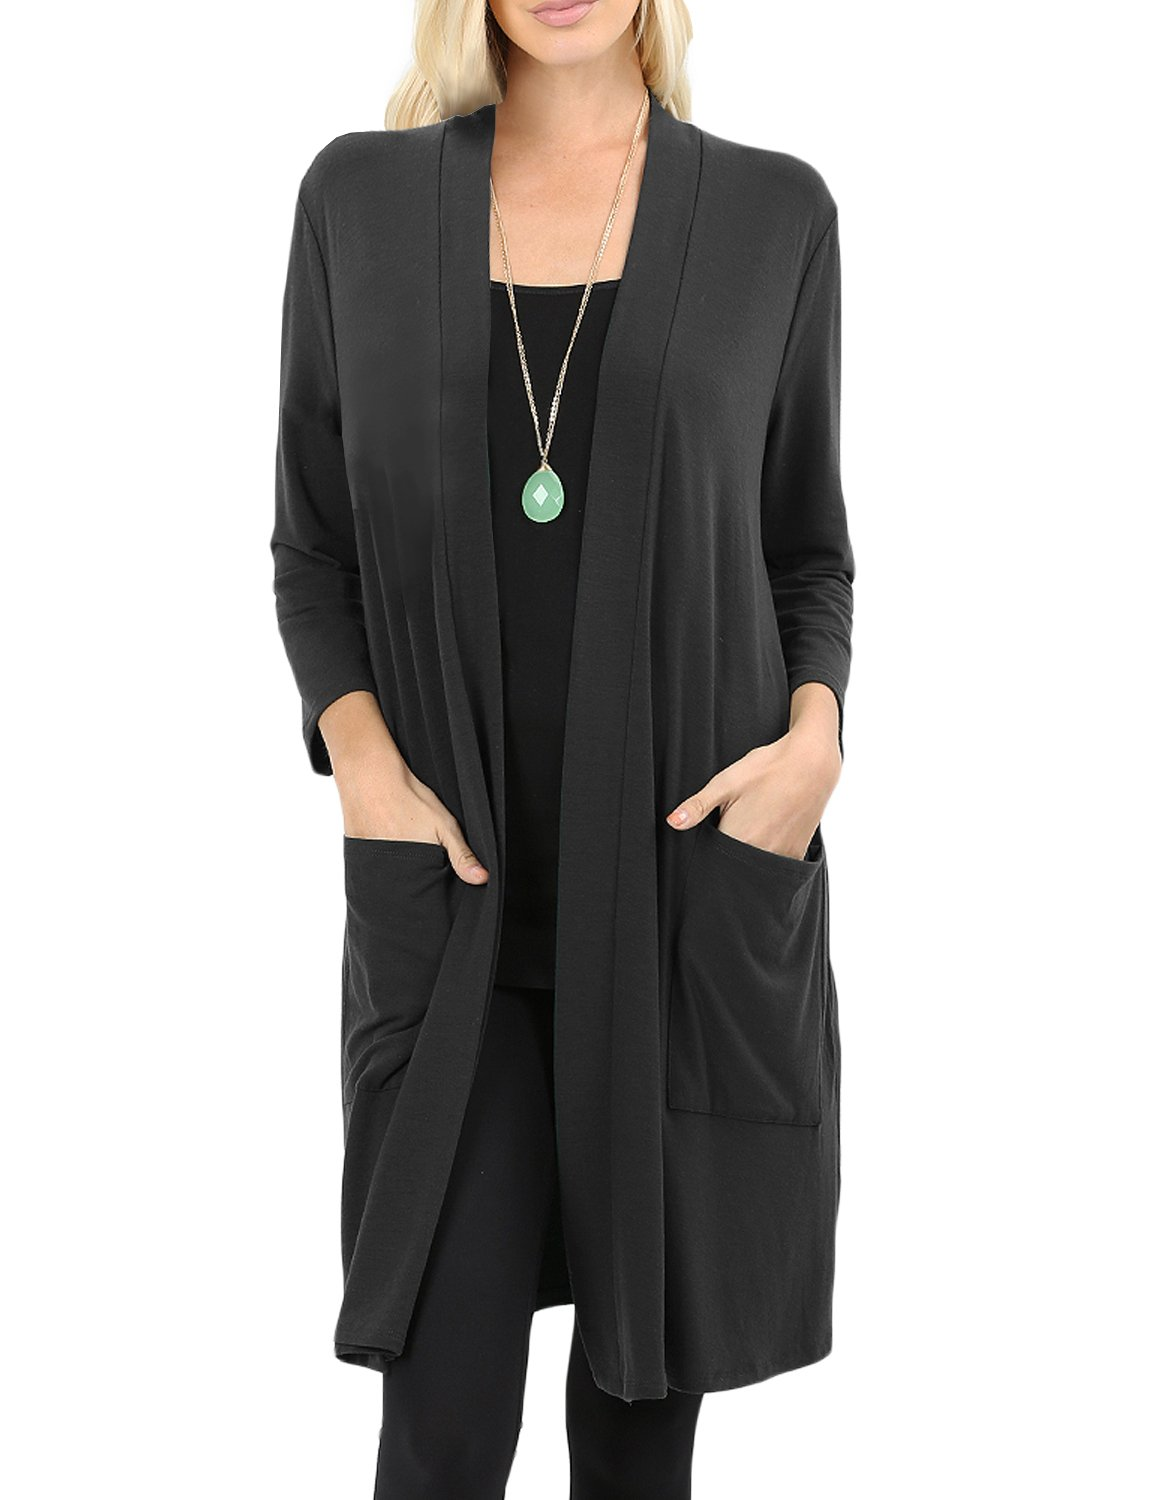 NE PEOPLE Womens Basic 3/4 Sleeve Open Front Cardigan with Pockets S-3XL